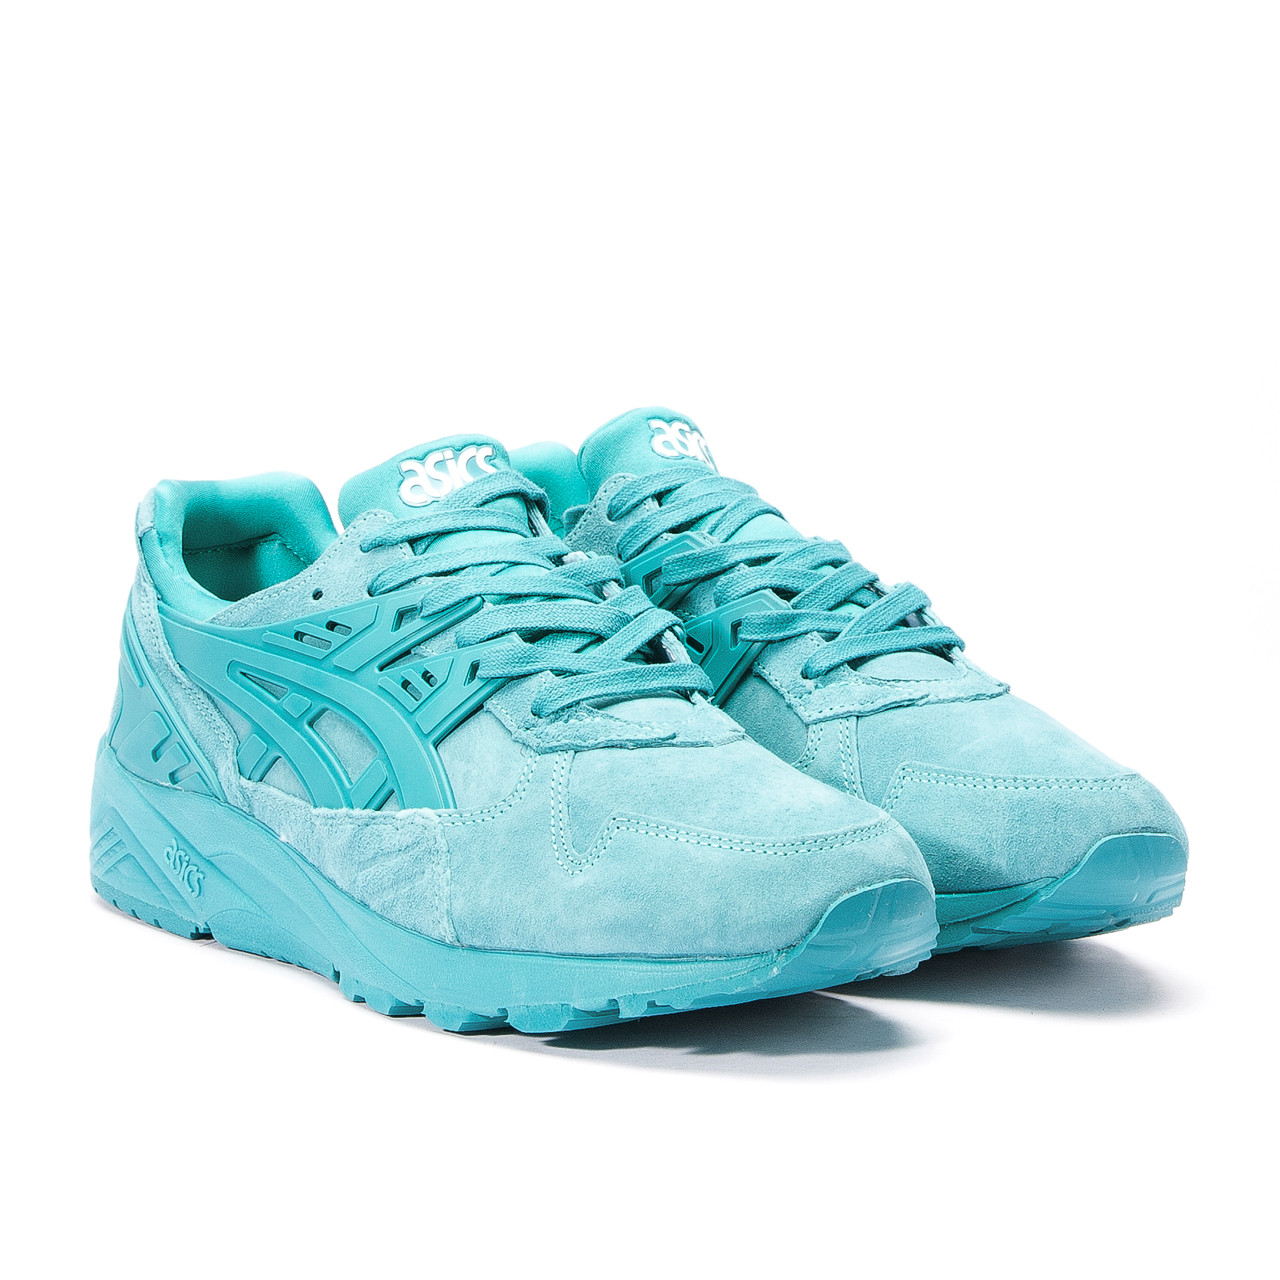 Asics Gel Kayano Asics Gel Kayano Trainer Spectra Green H6c0l 7878